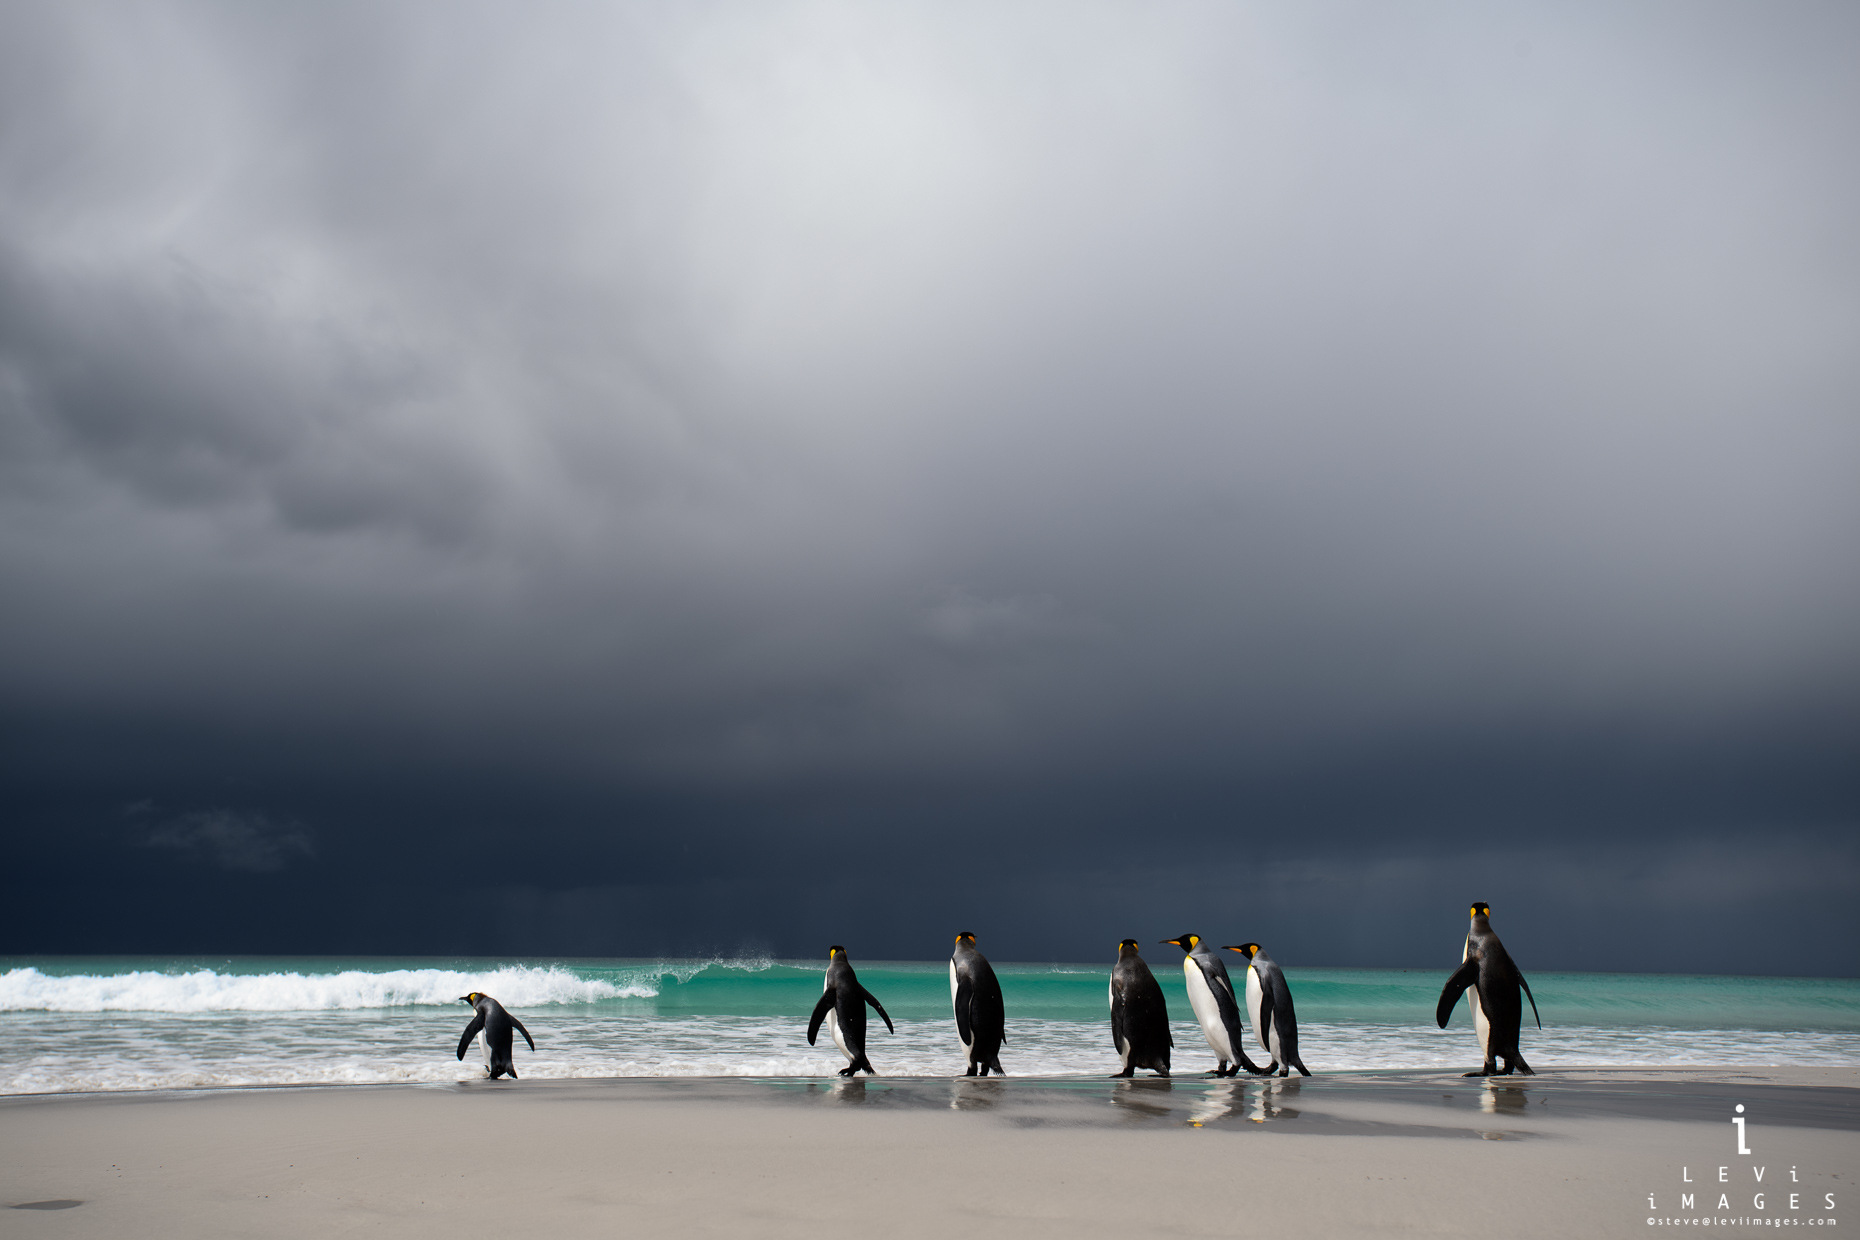 Into the Storm. King penguins (Aptenodytes patagonicus) entering the sea. Falkland Islands